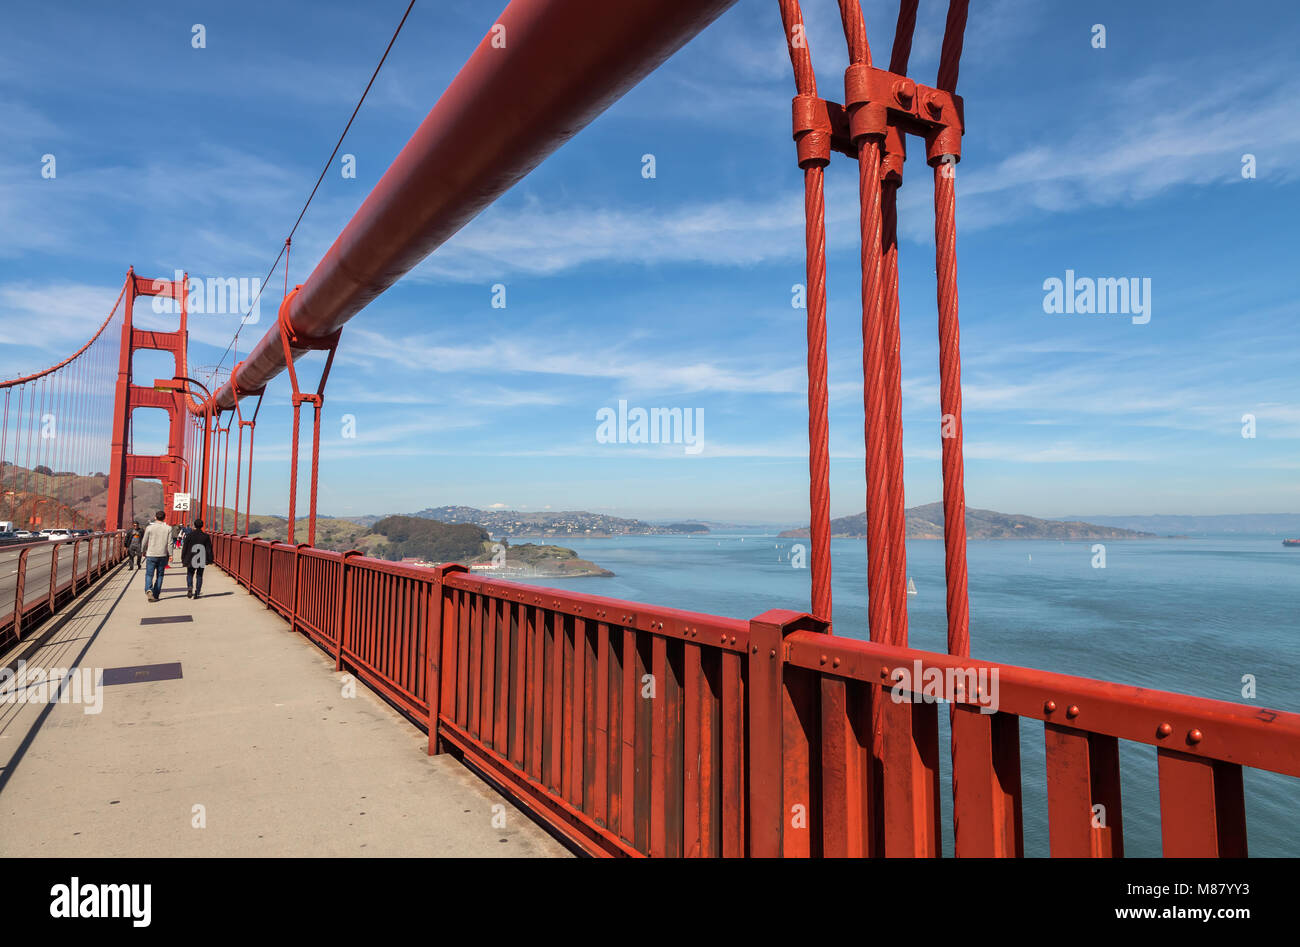 Golden Gate Bridge et les piétons, surplombant la baie de San Francisco, Californie, États-Unis. Photo Stock